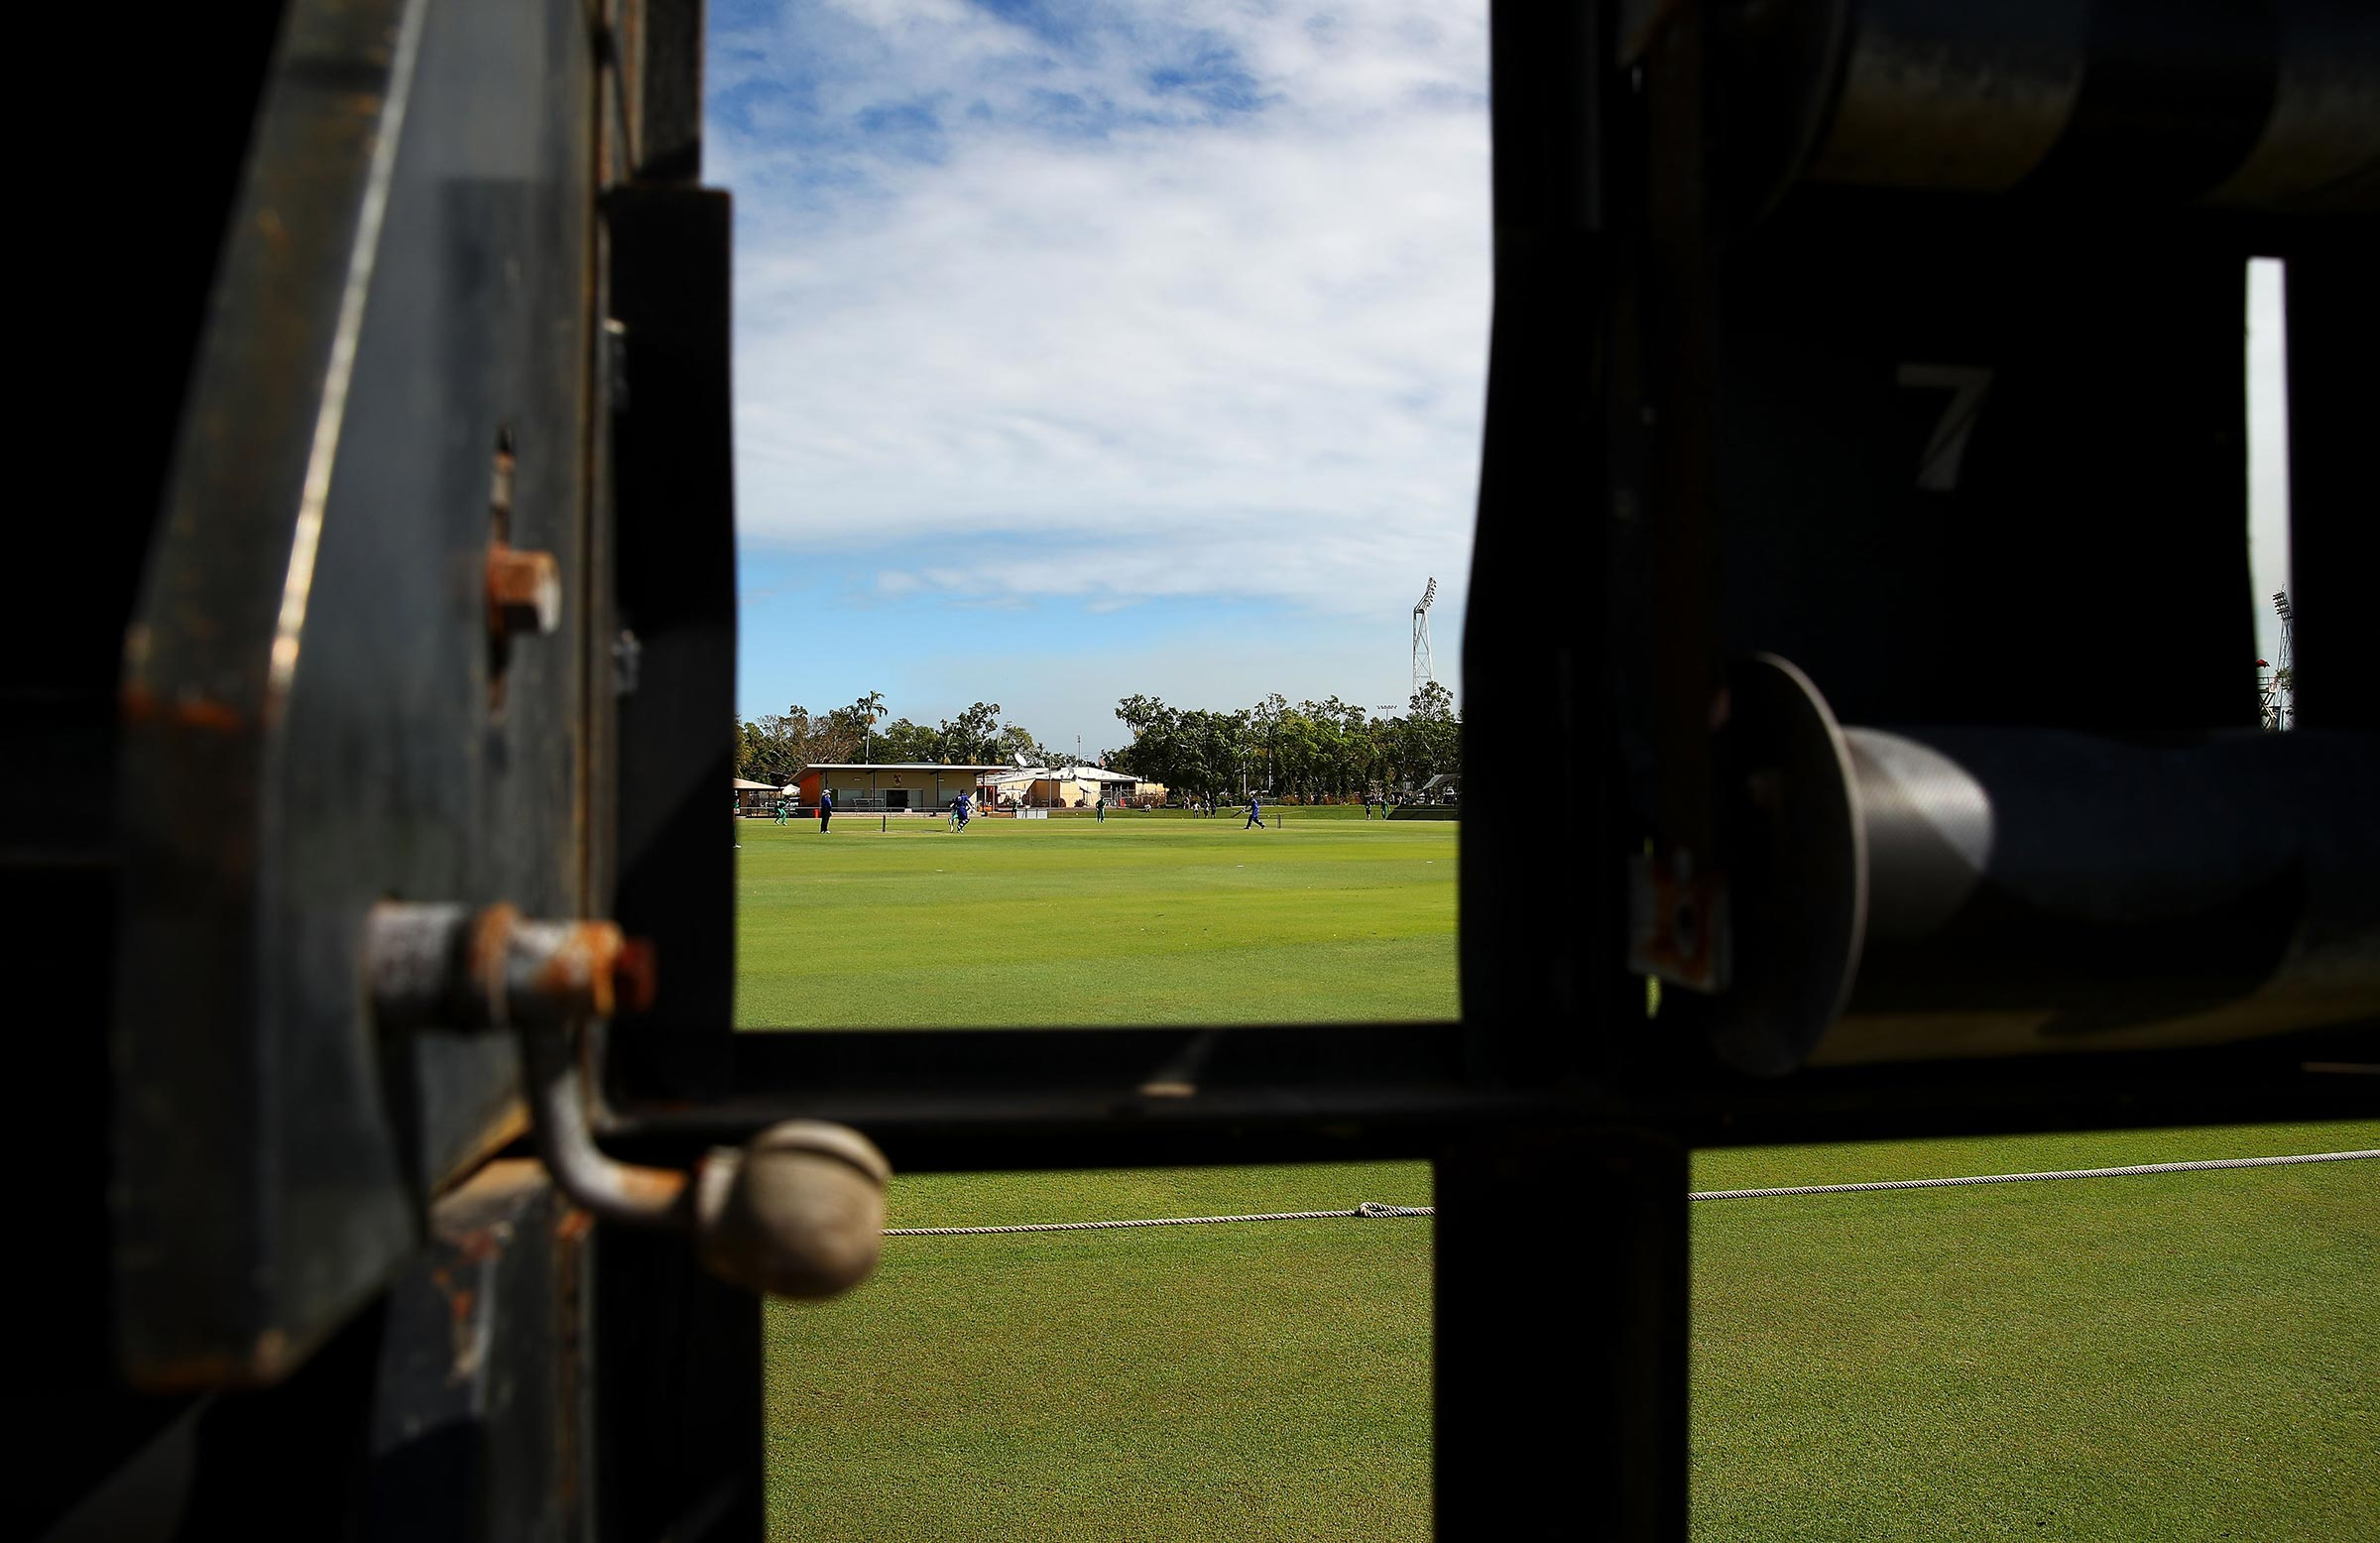 Local cricket is back after the COVID-19 shutdown // Getty